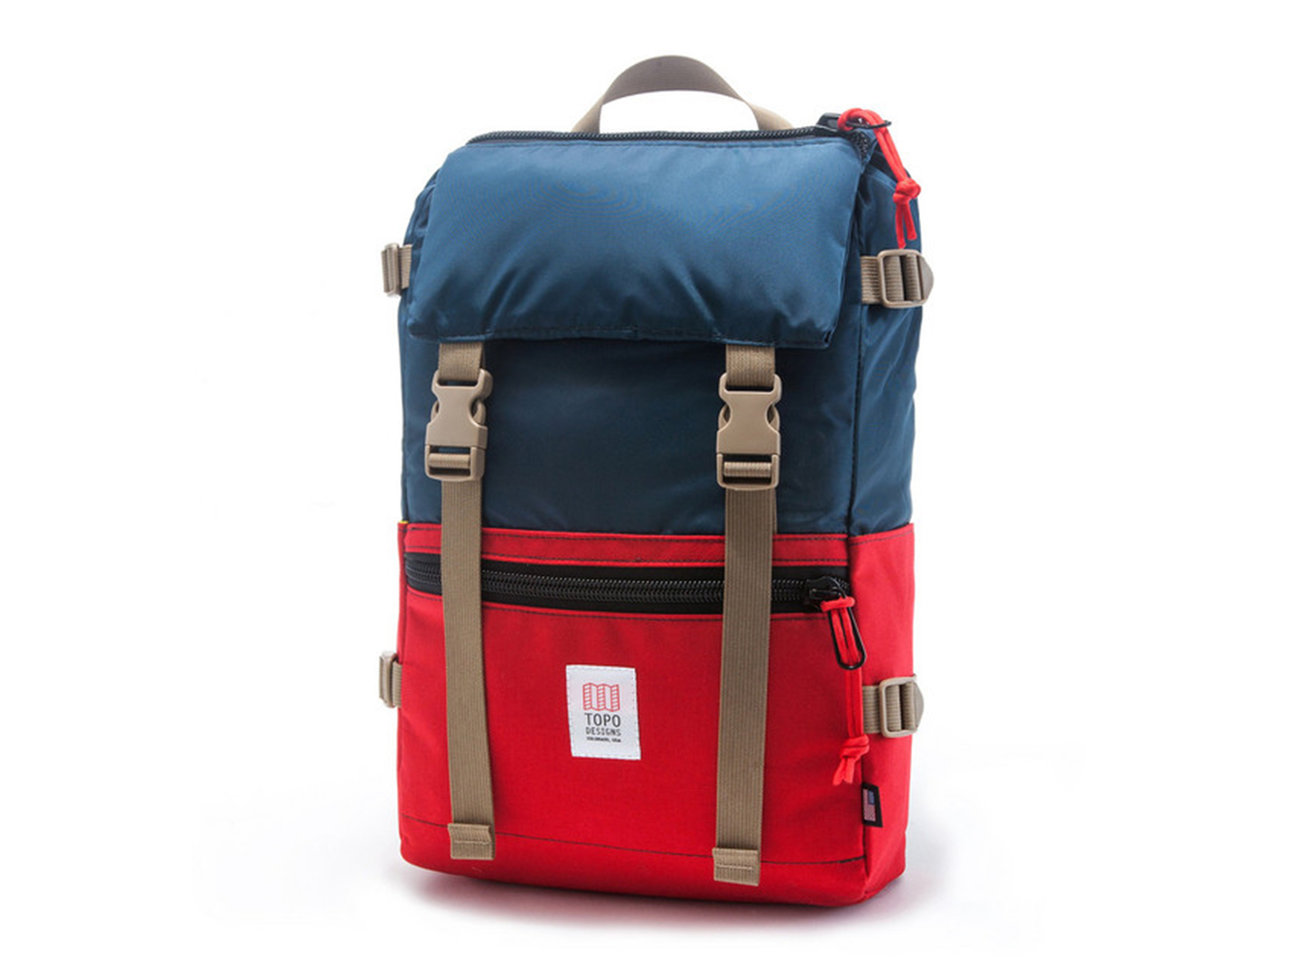 topo-design-backpack-ecogiftguide1215.jpg